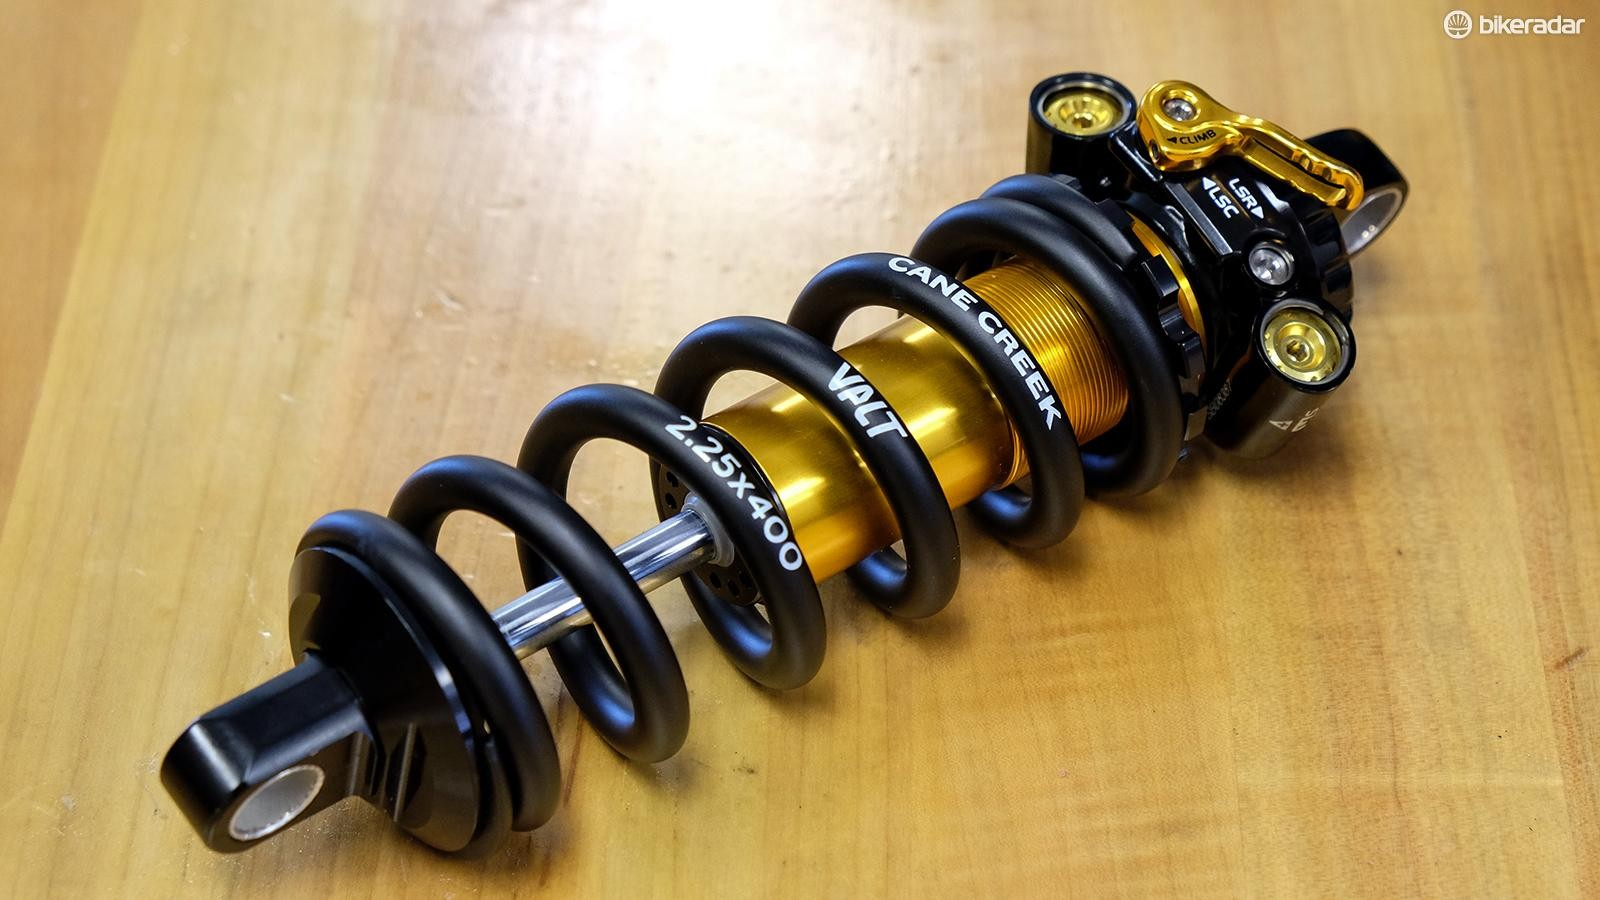 In addition to the new shock, Cane Creek has a new lightweight coil spring. The Valt is claimed to shave 50-221g off stock springs